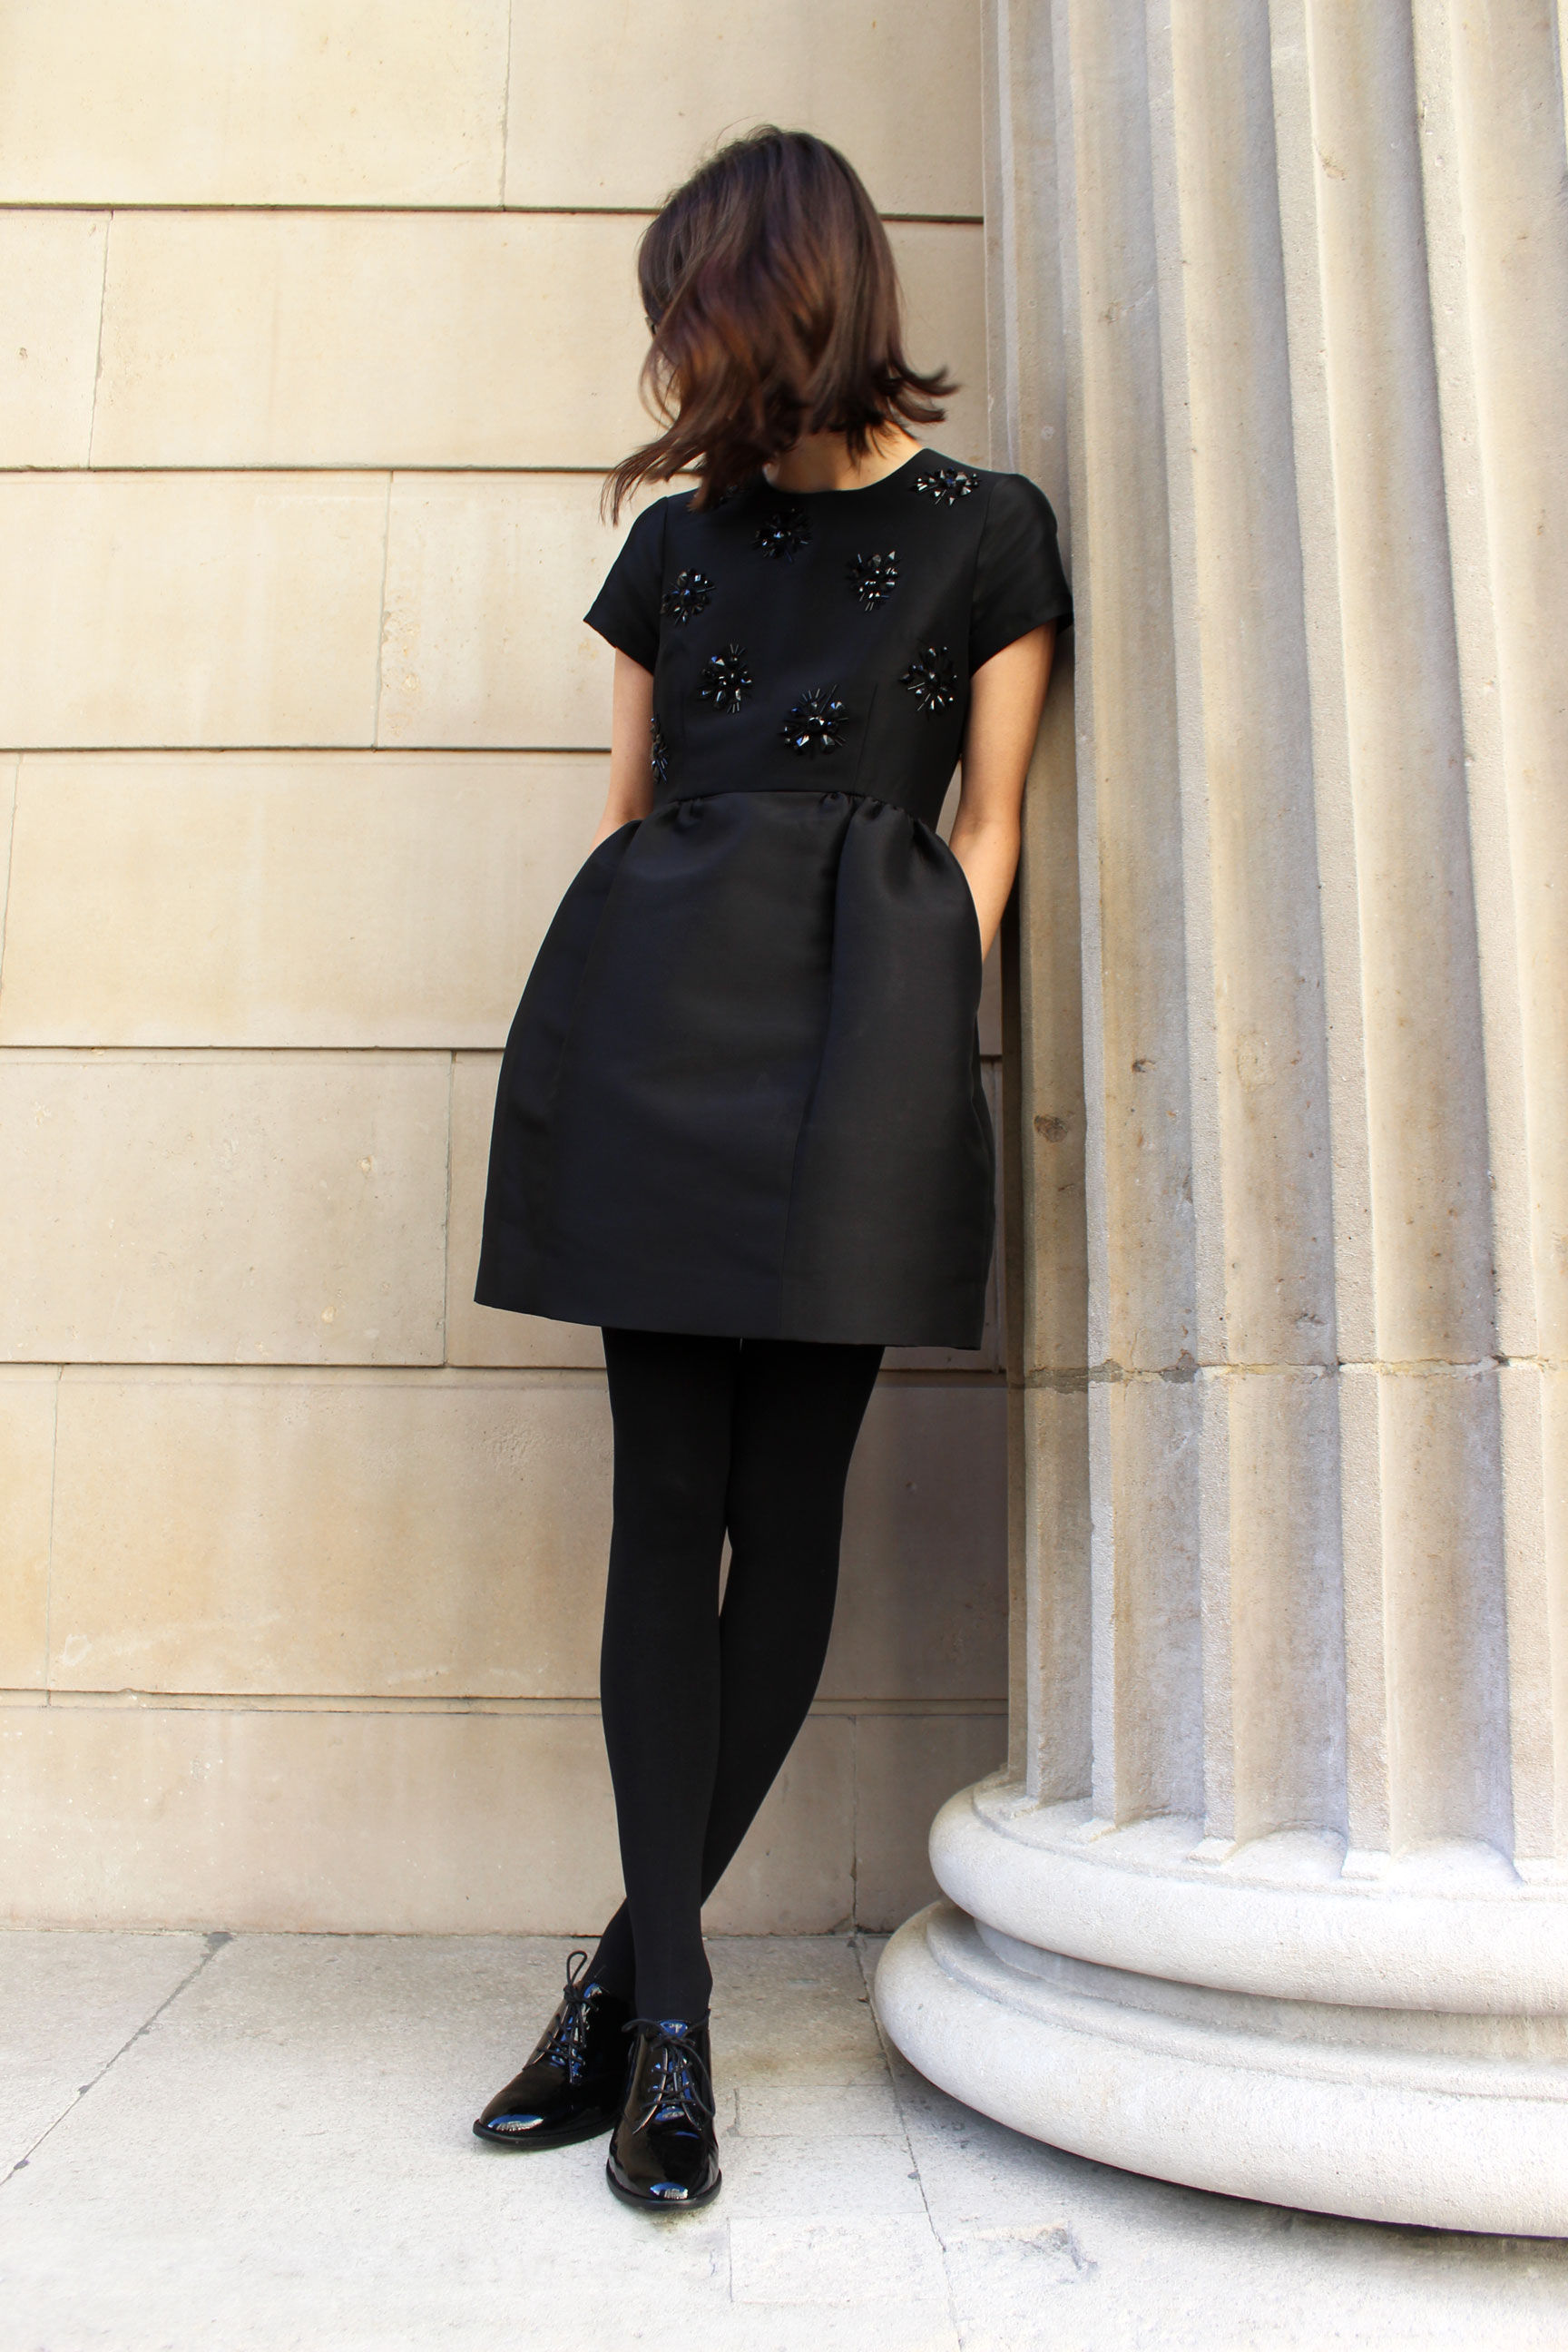 Kate Spade little black dress, paired with opaque tights and patent loafers.